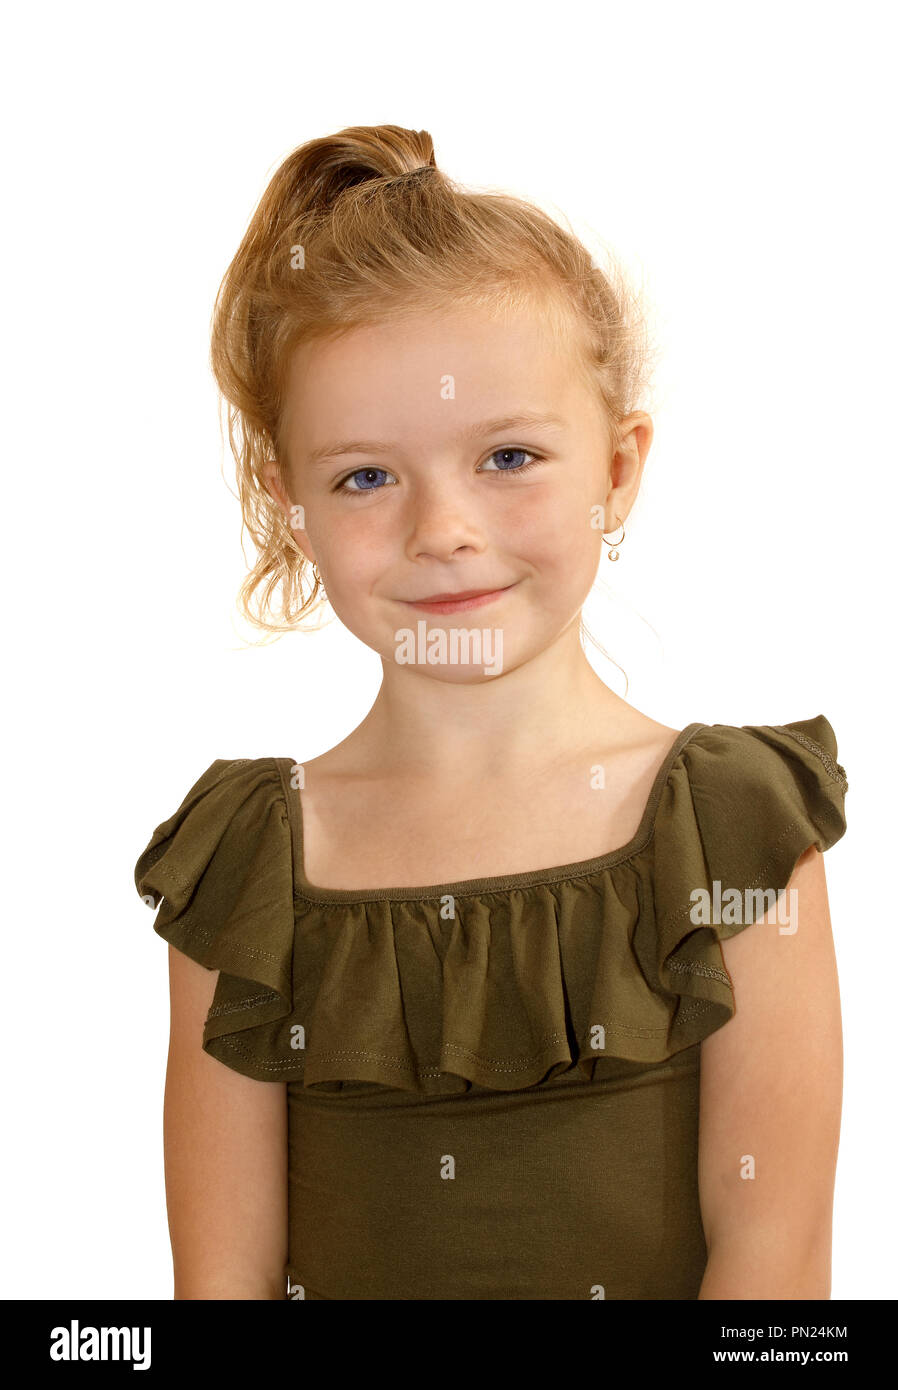 Six year old girl smiling towards the camera - Stock Image